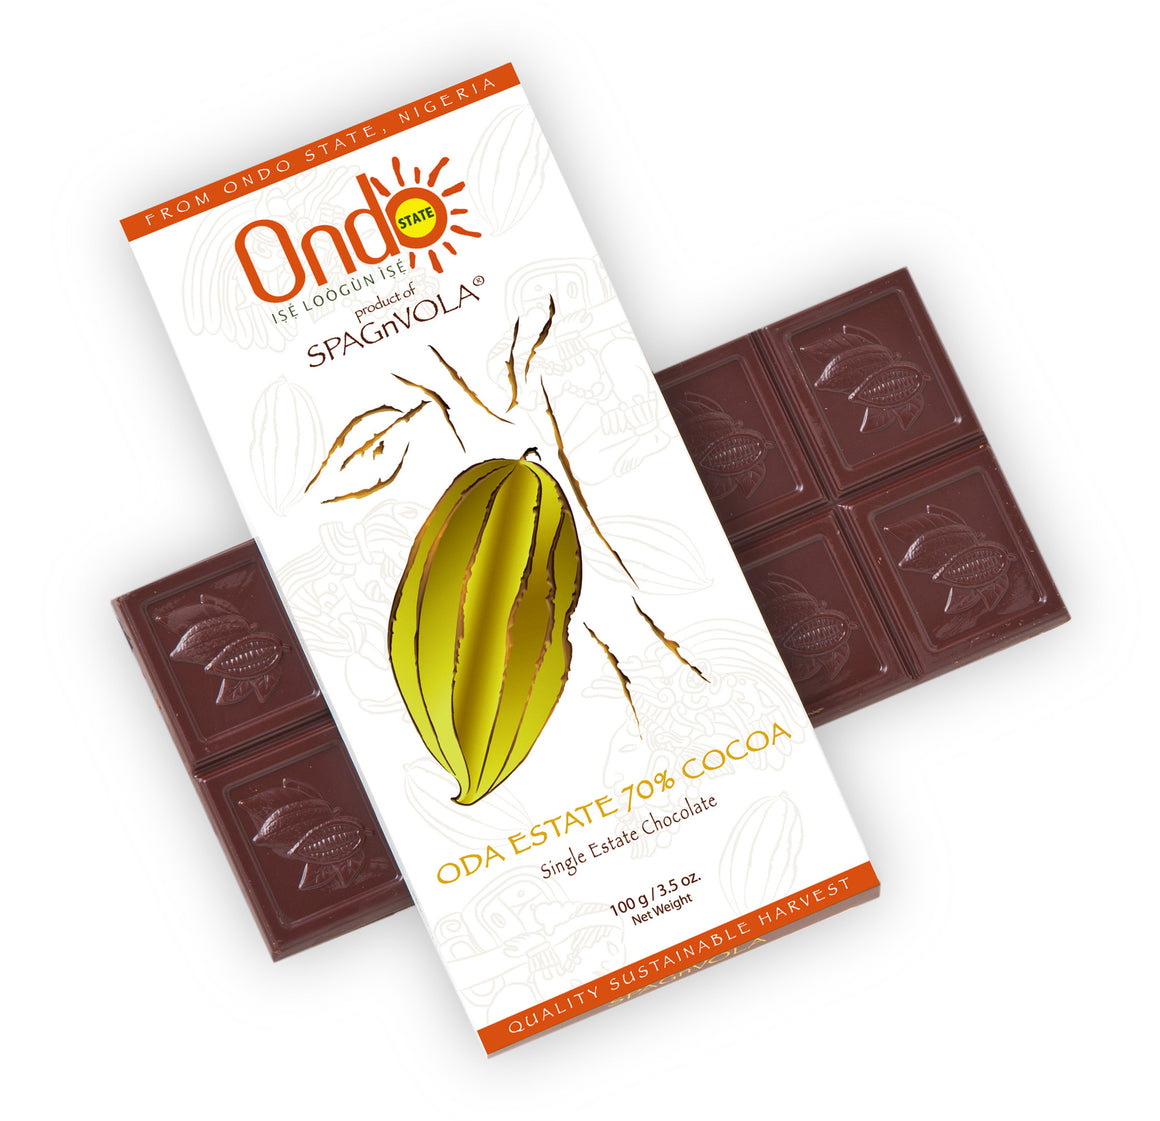 Exclusive and limited quantity - Award Winning Nigerian 70% Oda Cocoa Estate - Dark Chocolate Bar from Ondo State, Nigeria